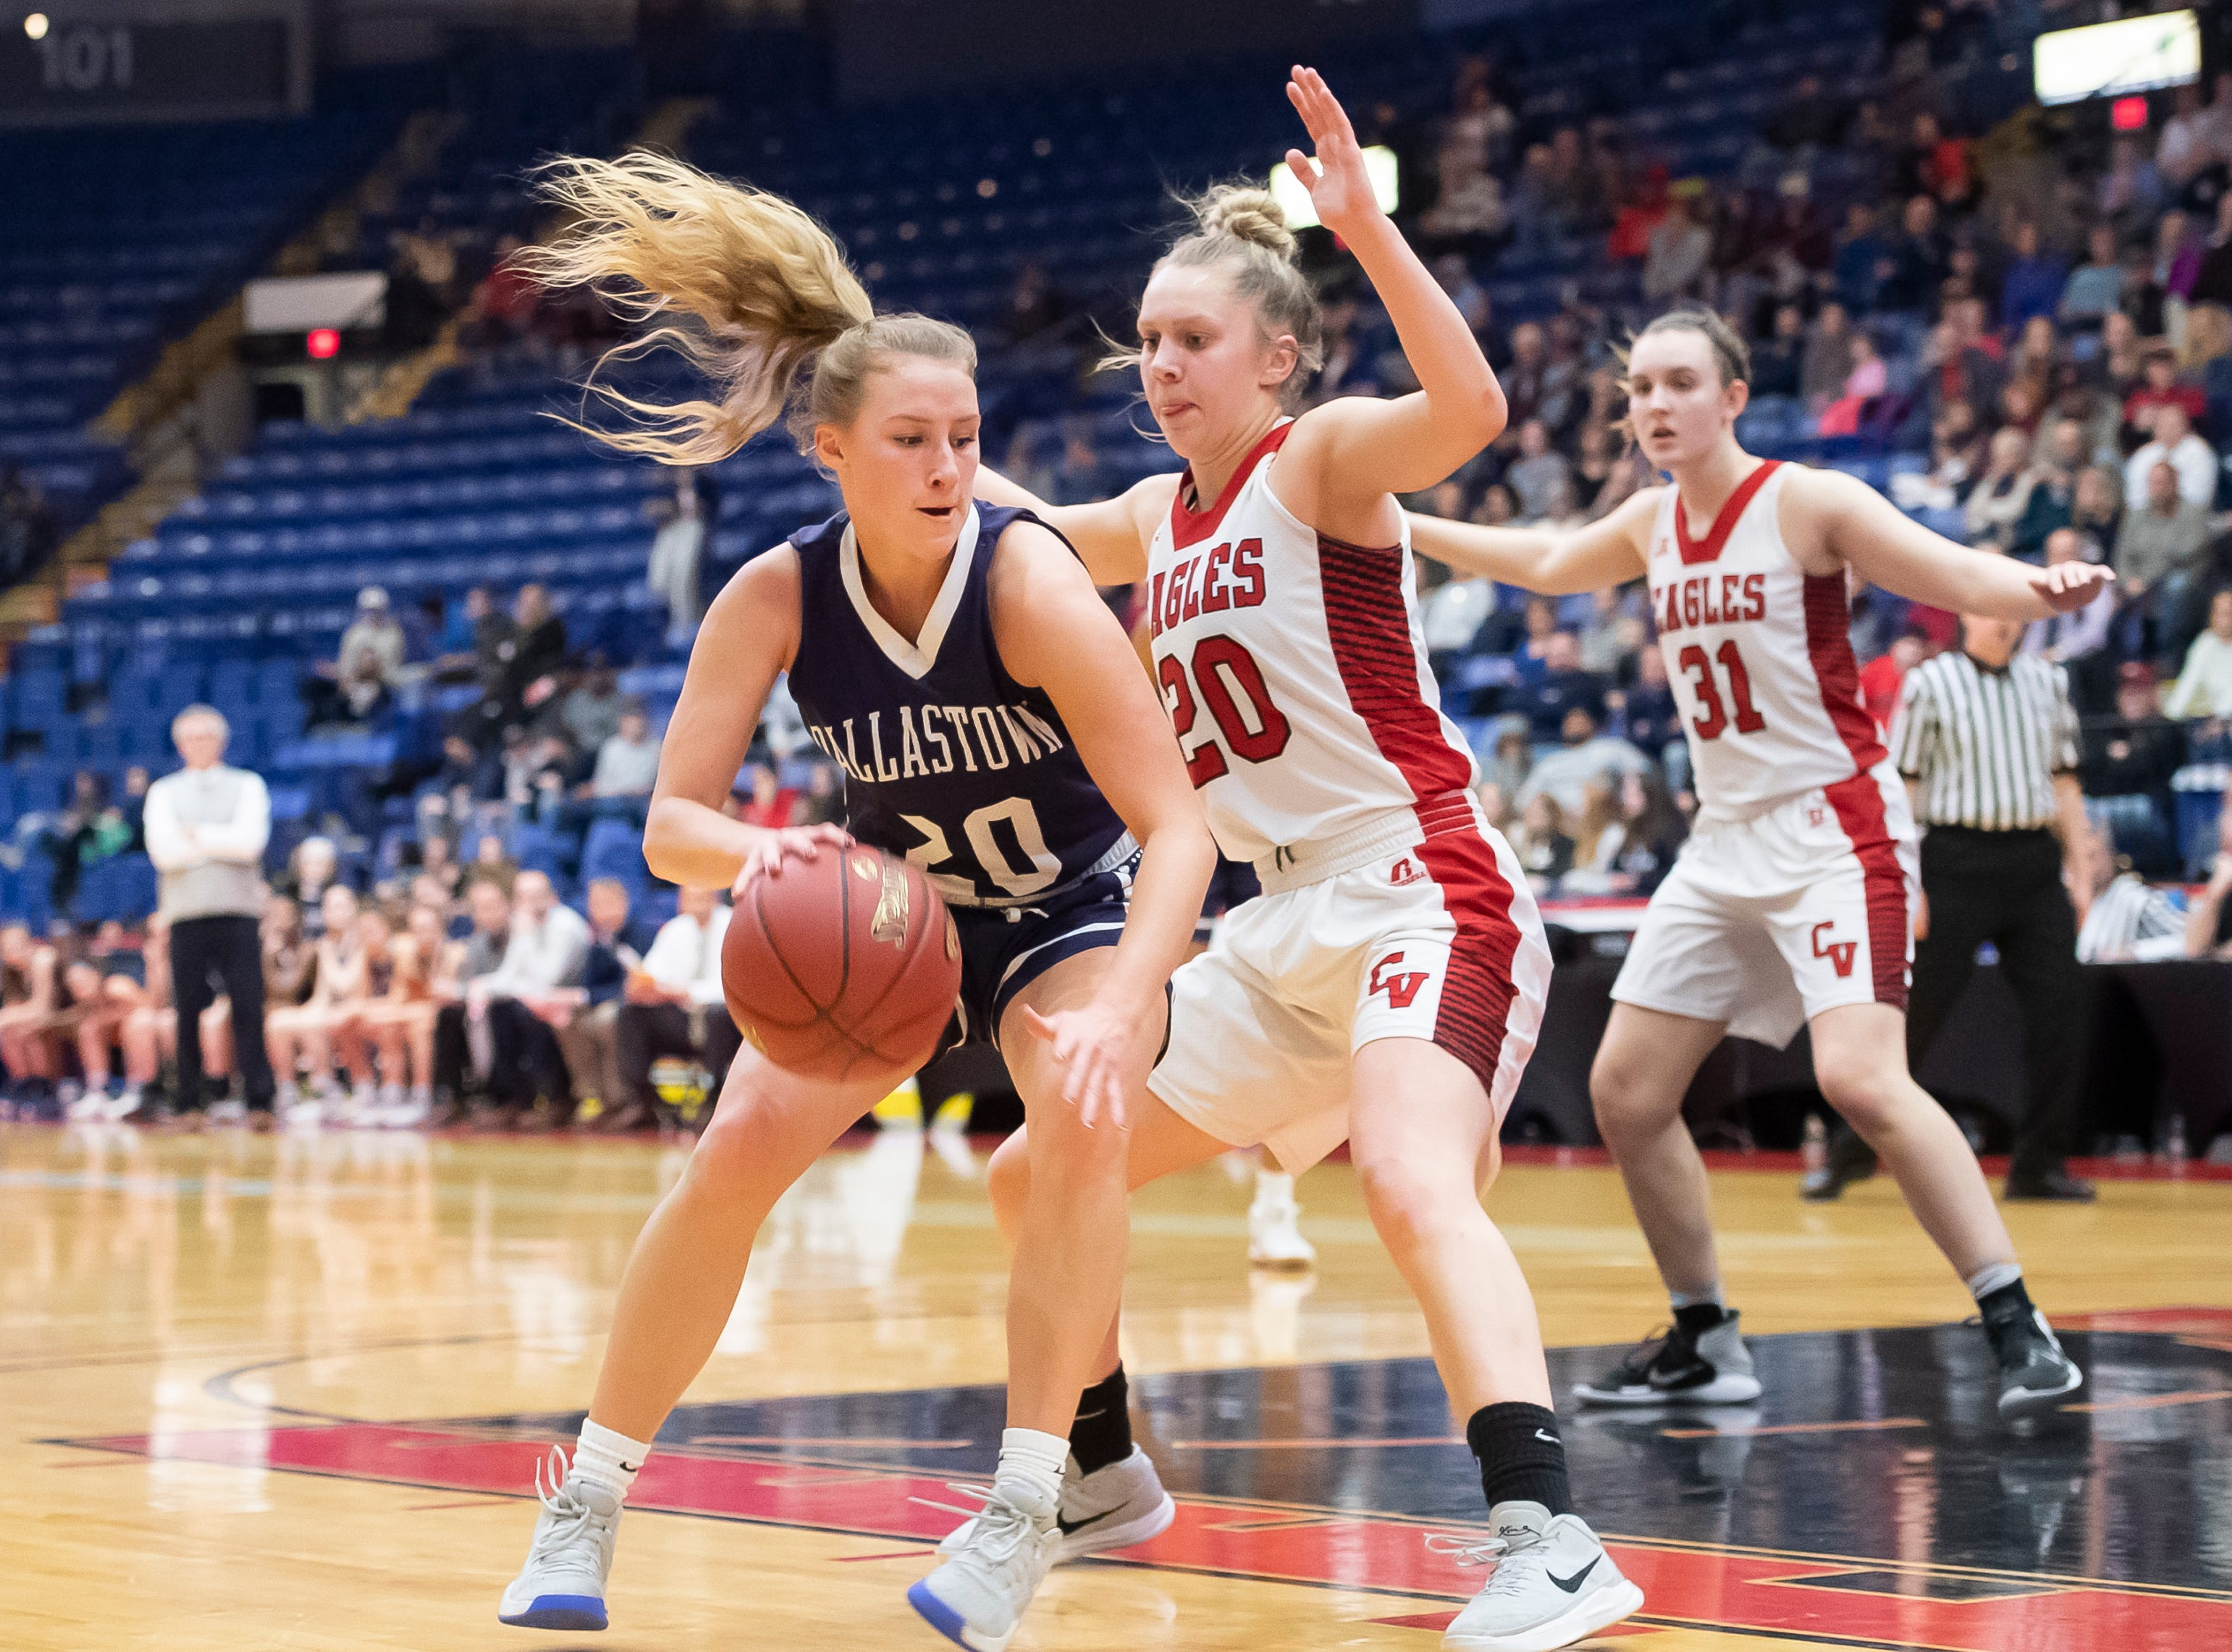 Dallastown's Lily Jamison drives against Cumberland Valley's Julie Jekot during the District 3 6A girls championship game at the Santander Arena in Reading, Pa., Friday, March 1, 2019. Dallastown fell 33-27.